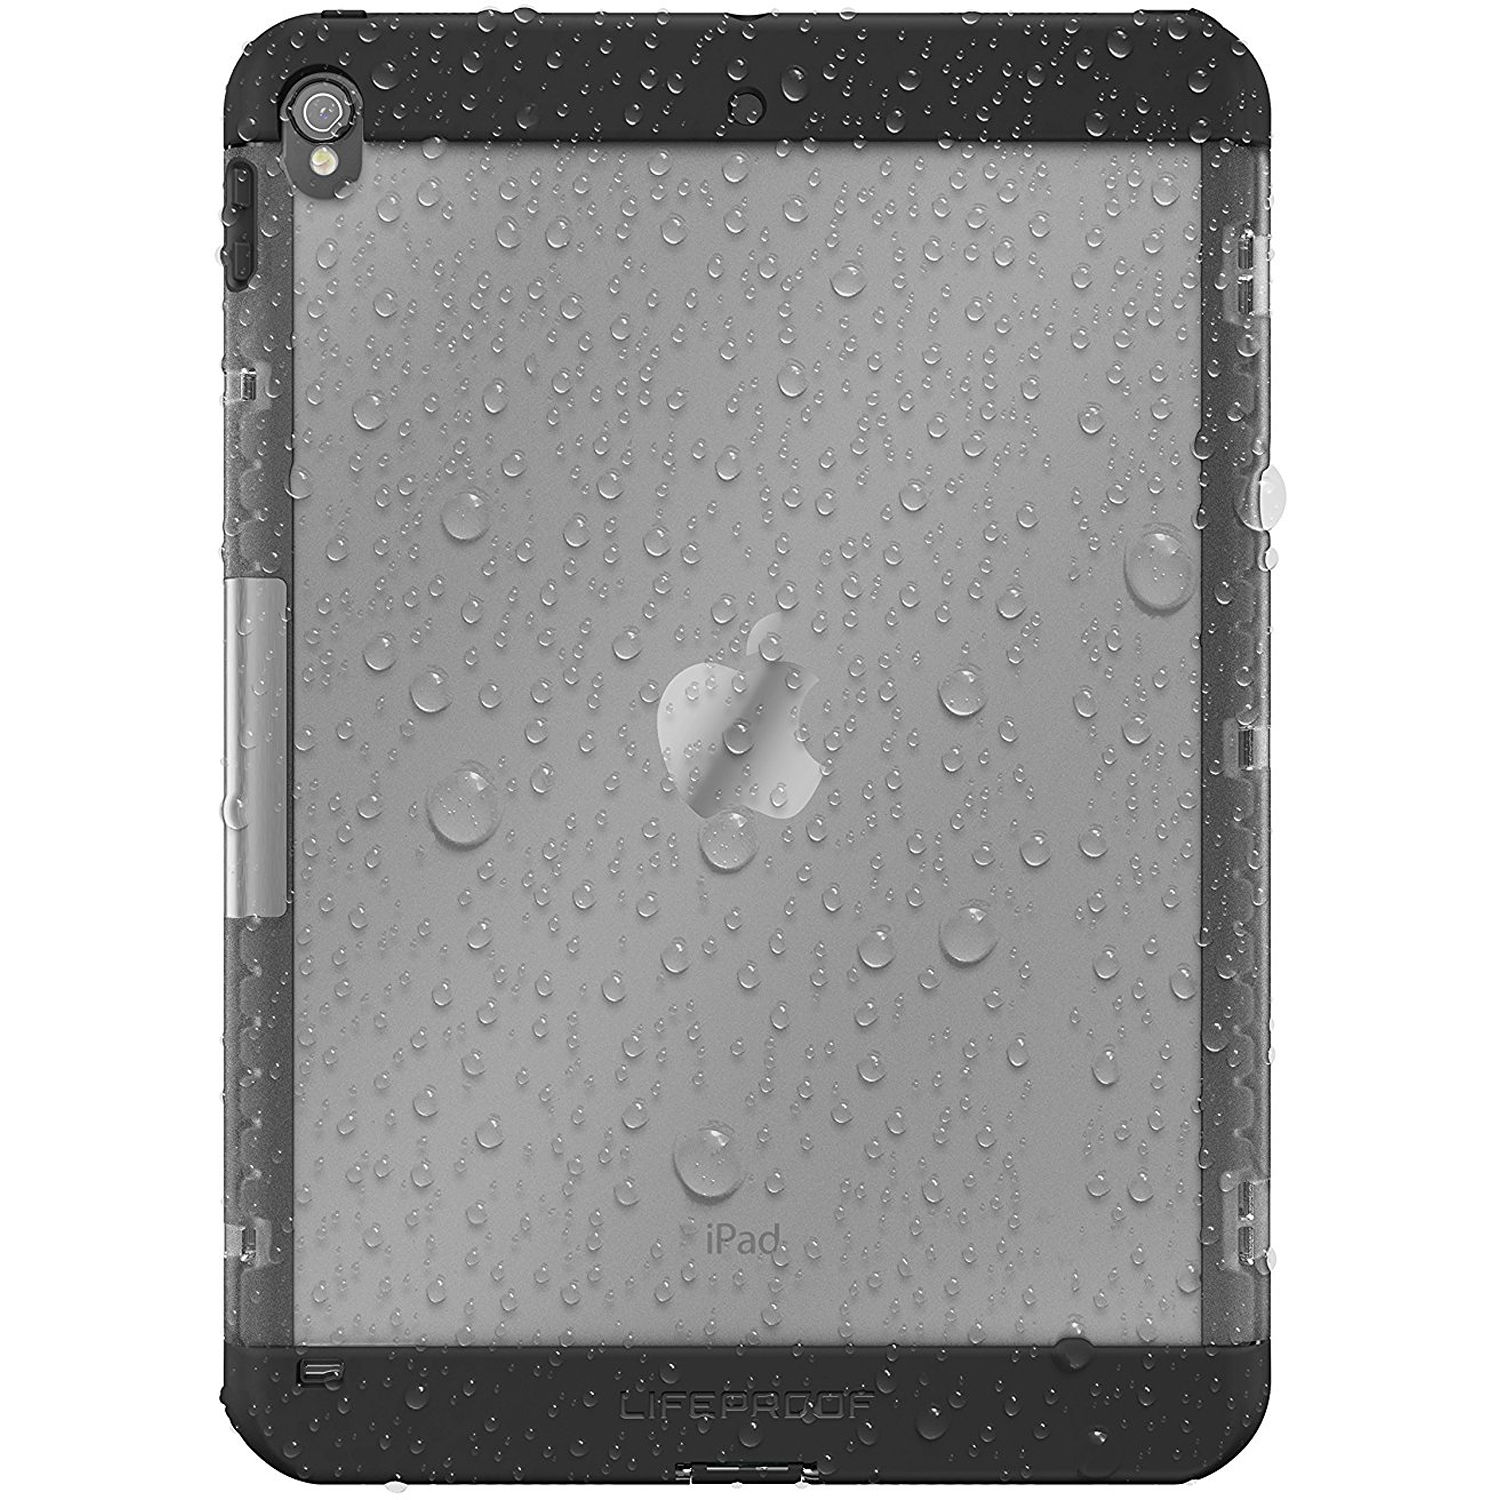 half off 4c513 0ecbb LifeProof NUUD Case for iPad Pro 10.5